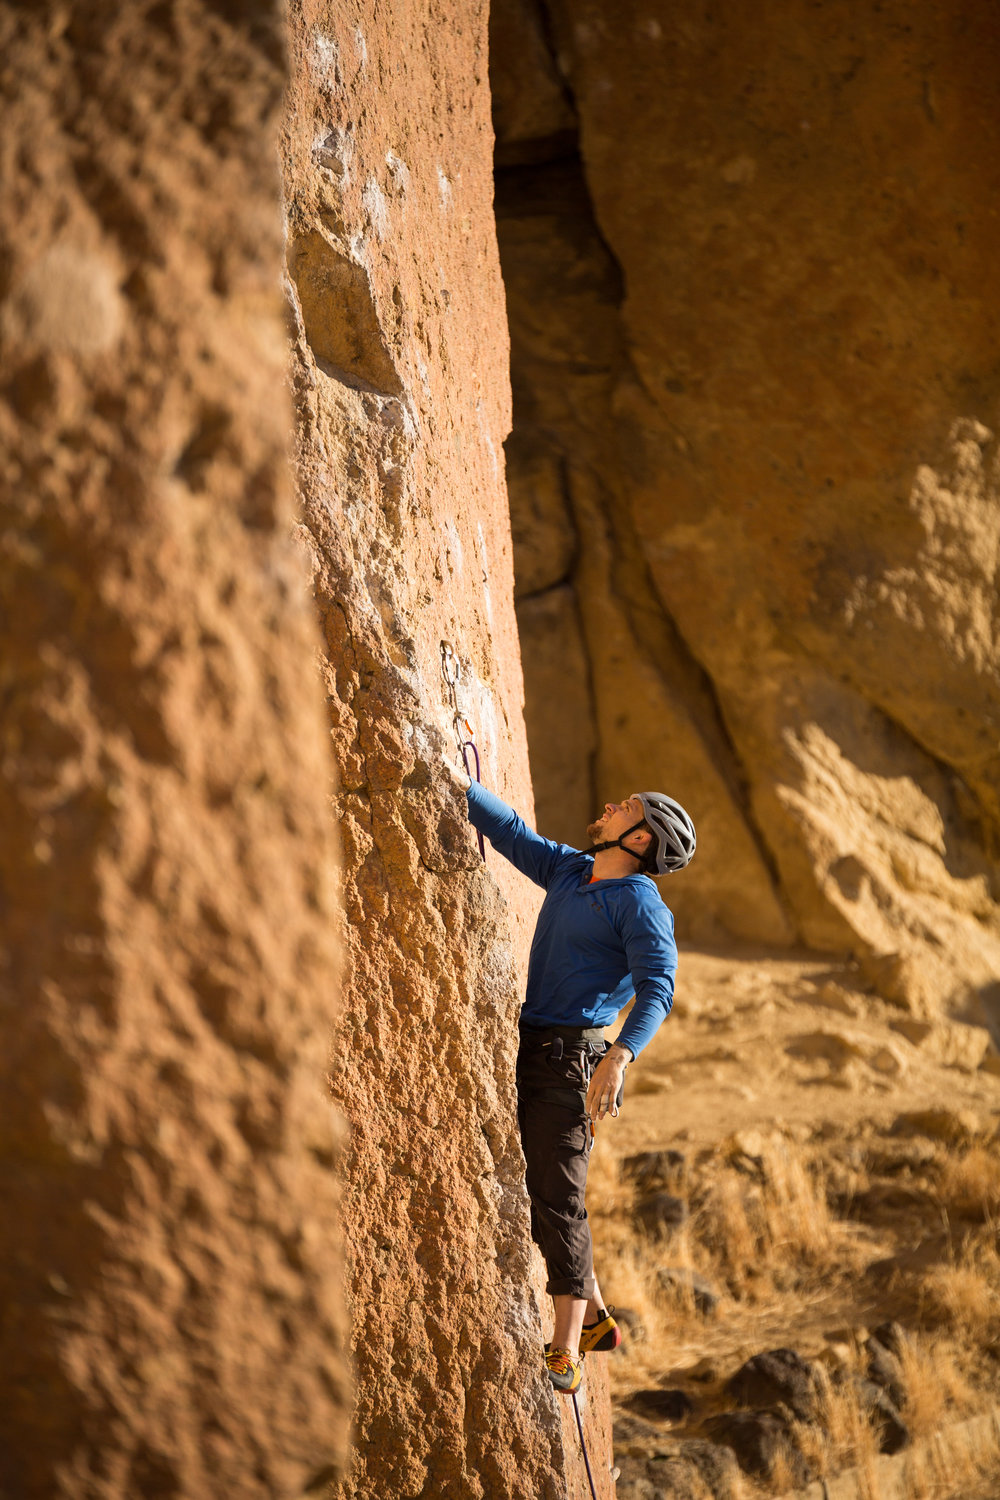 Cameron Apple, Smith Rock. Photo by Nicole Wasko, @nicole_wasko